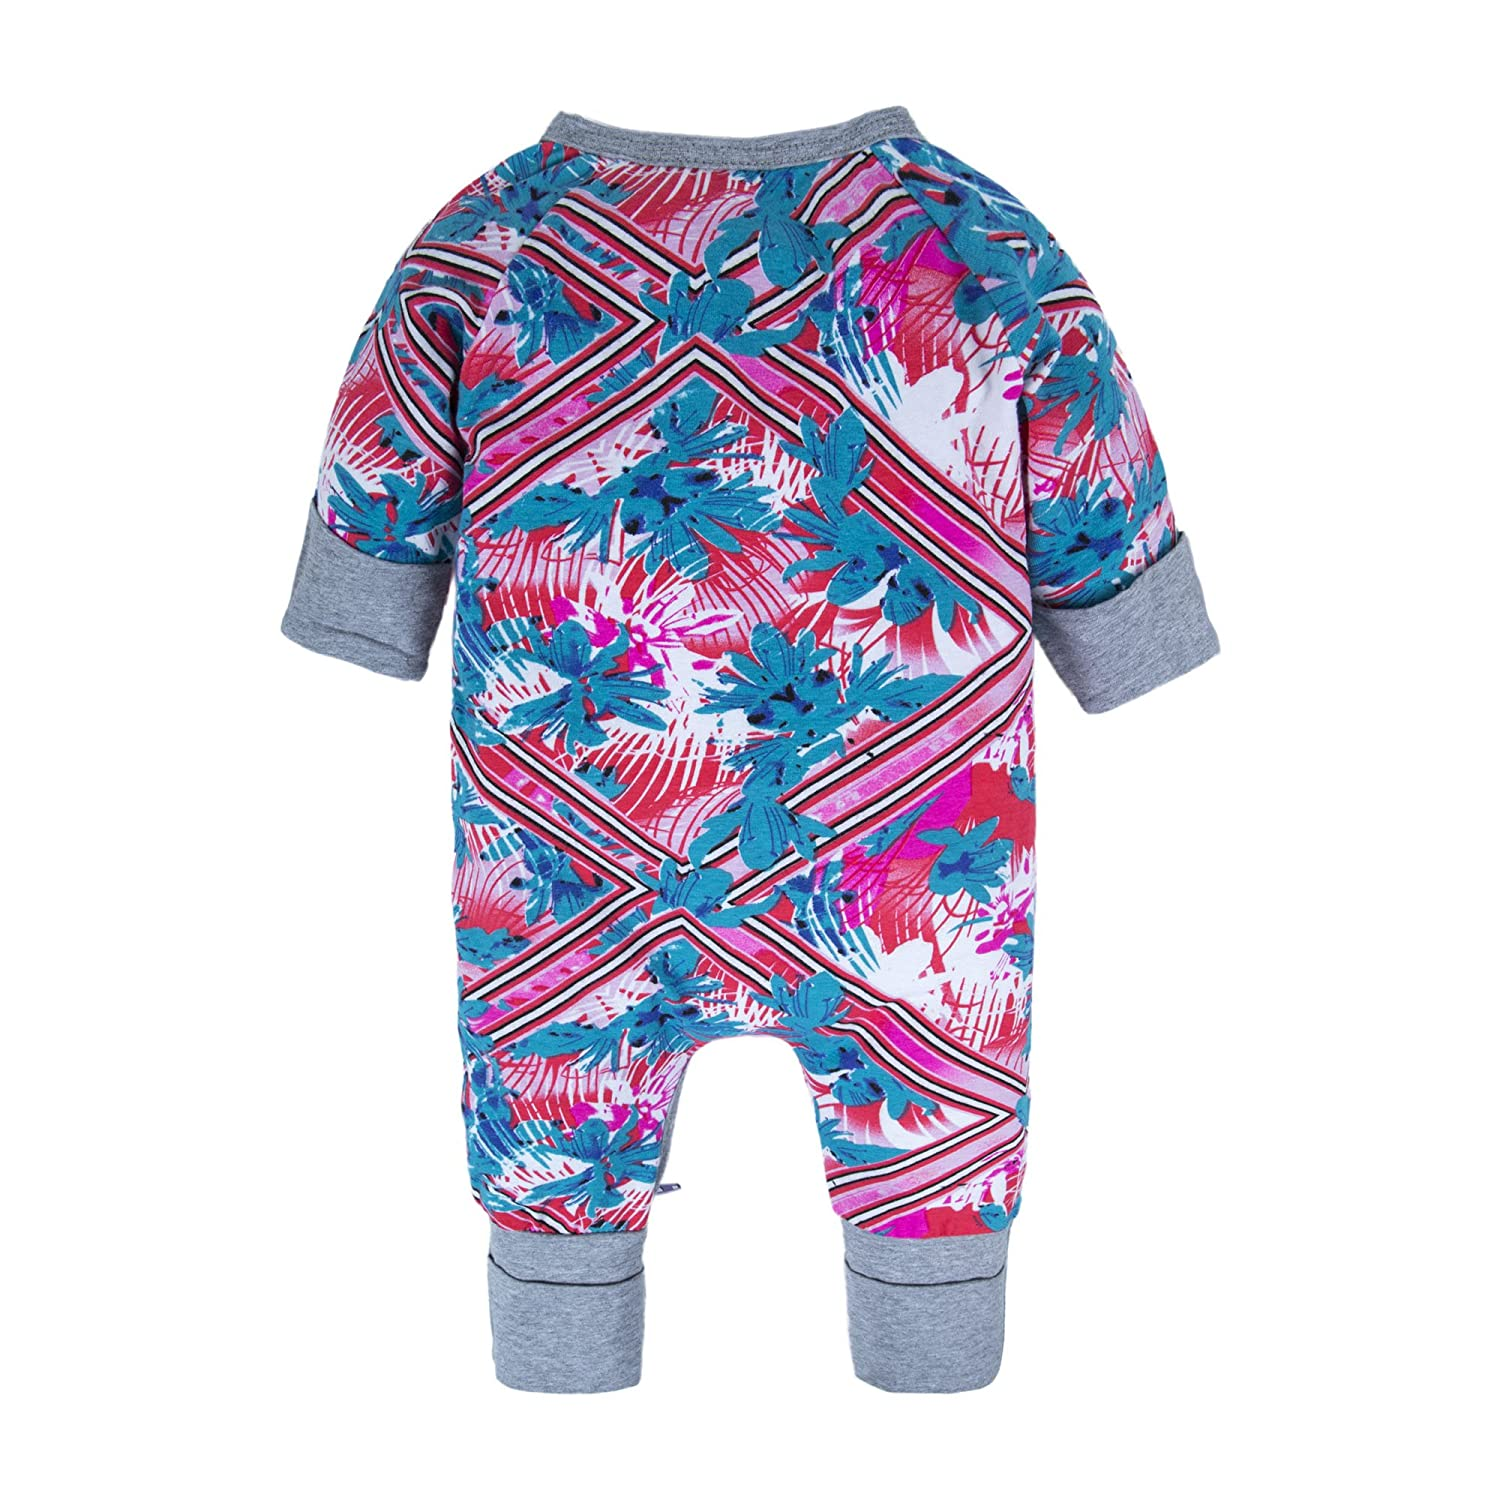 0f76c2c41030 BIG ELEPHANT Baby Girls 1 Piece Long Sleeve Pajama Graphic Print Zipper  Romper Style J T86-73 3-6 Months  Amazon.in  Clothing   Accessories